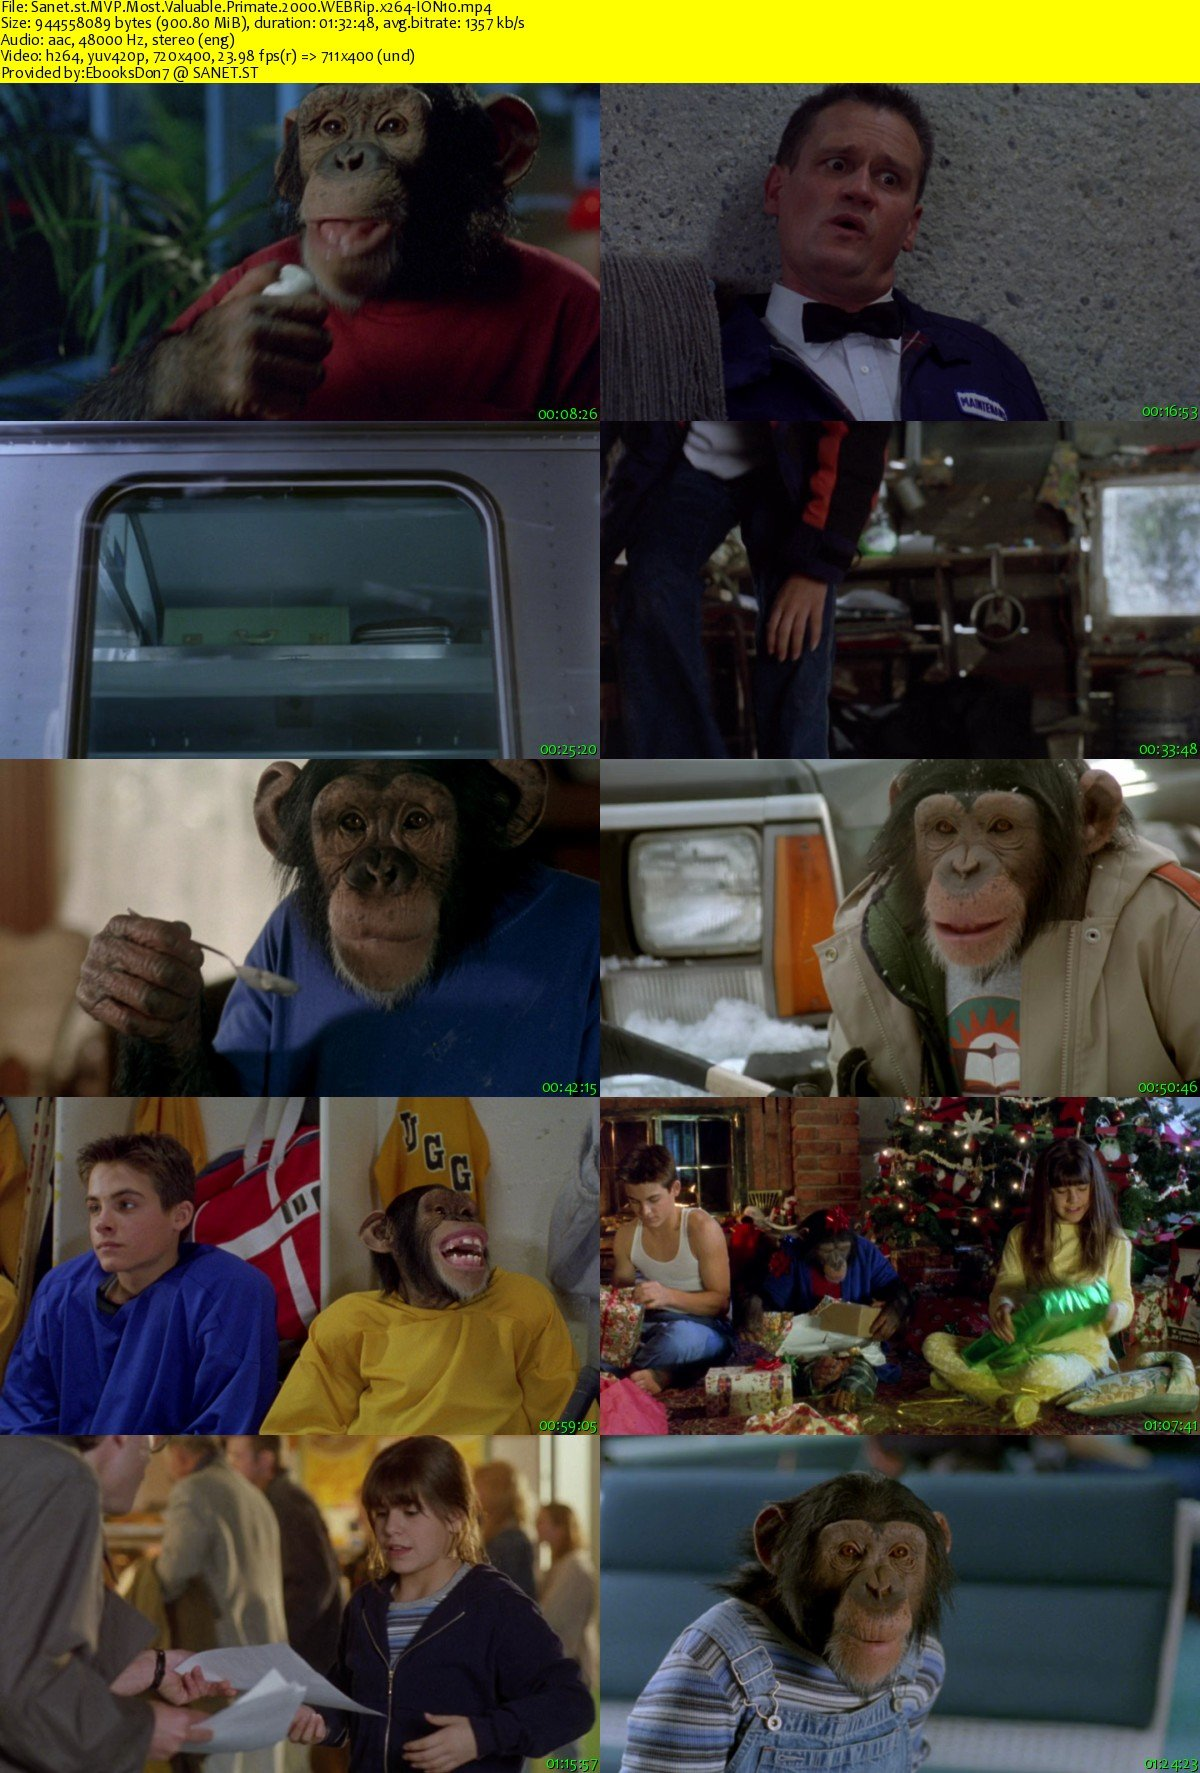 Download MVP Most Valuable Primate 2000 WEBRip x264-ION10